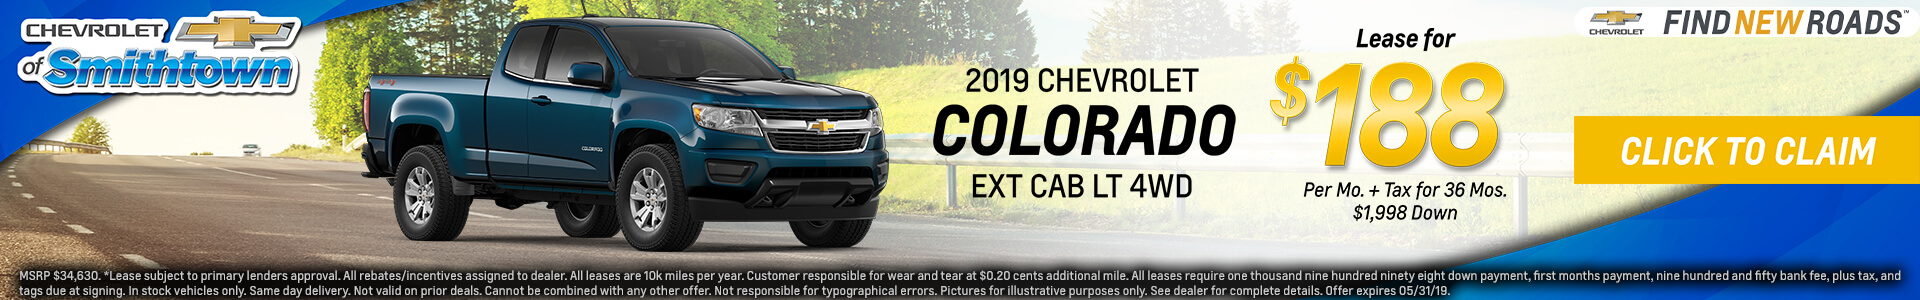 Chevrolet Colorado $168 Lease